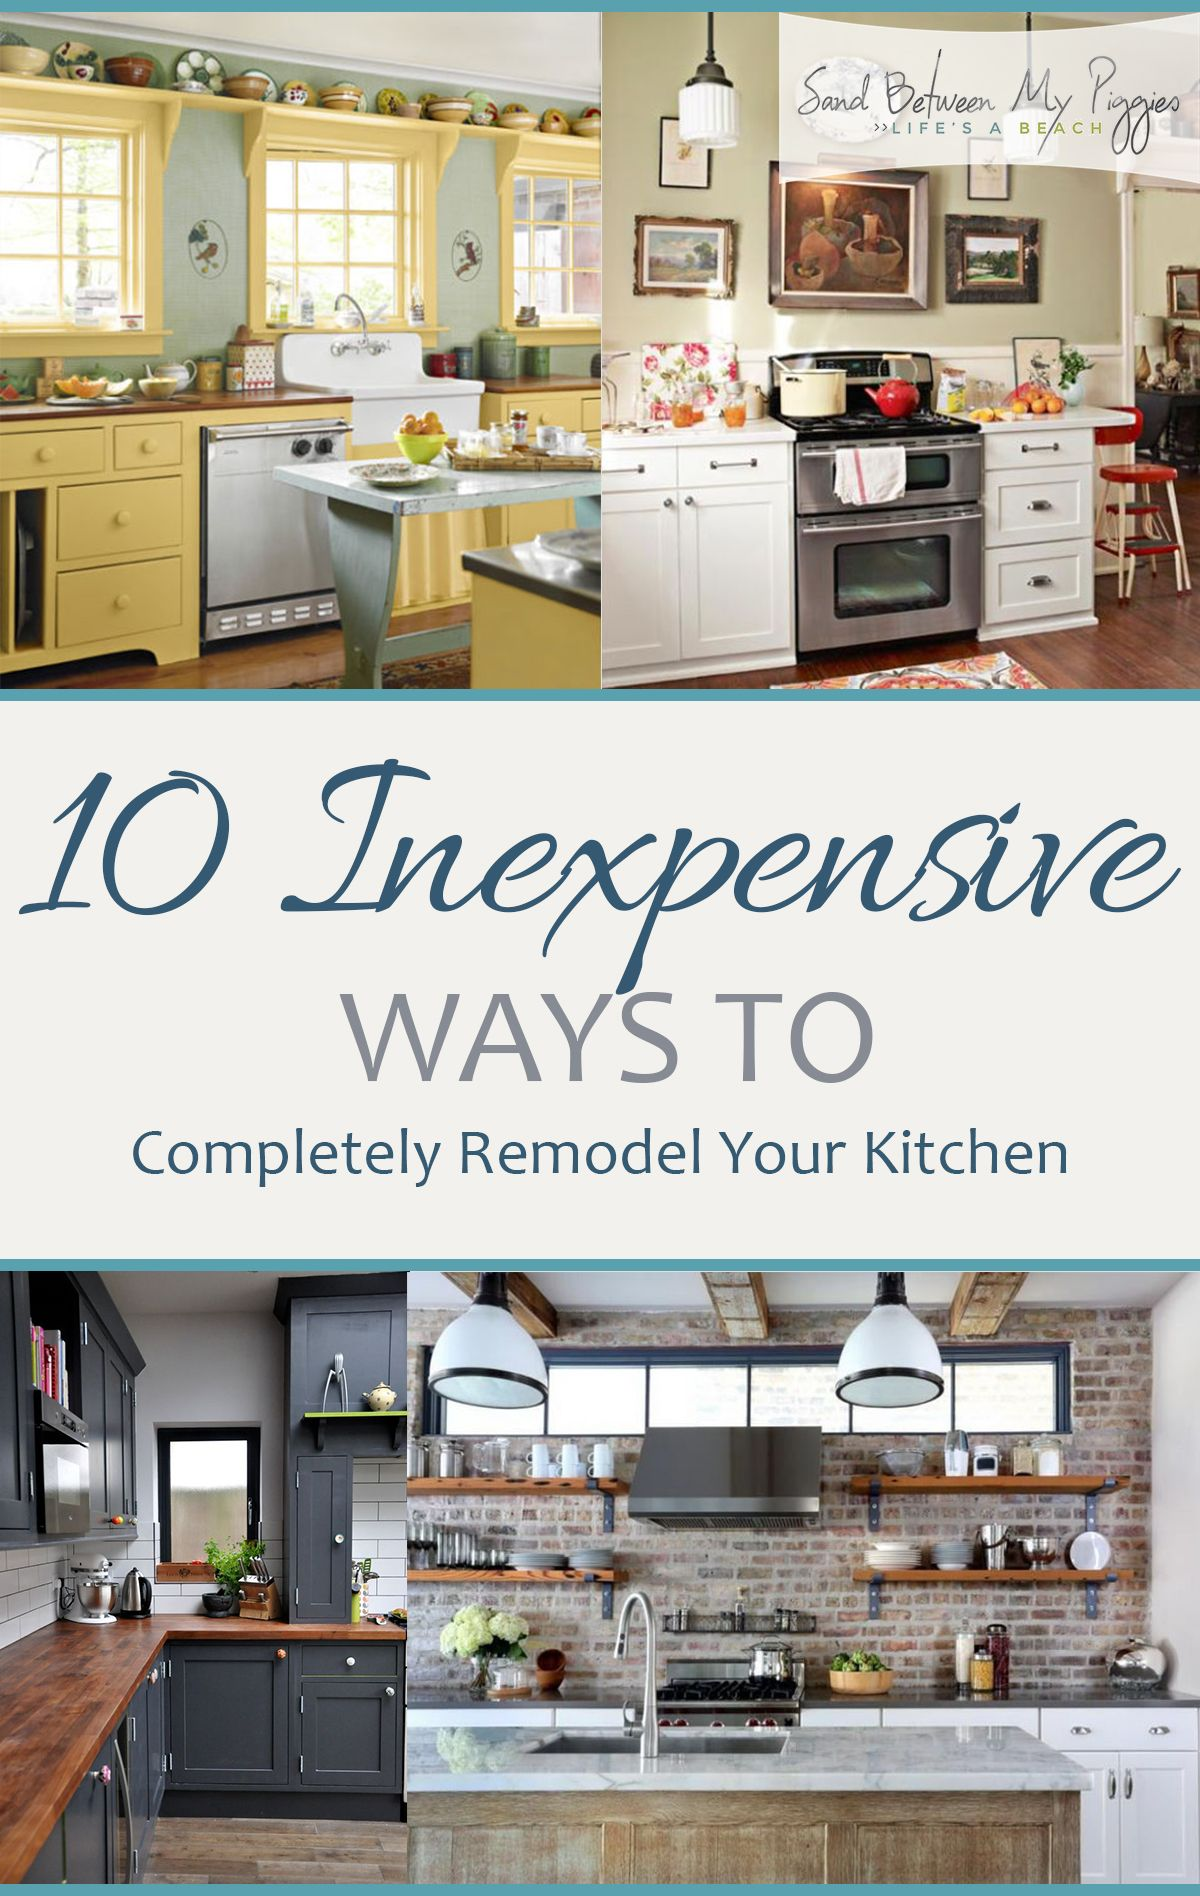 10 Inexpensive Ways to Completely Remodel Your Kitchen| How to ...